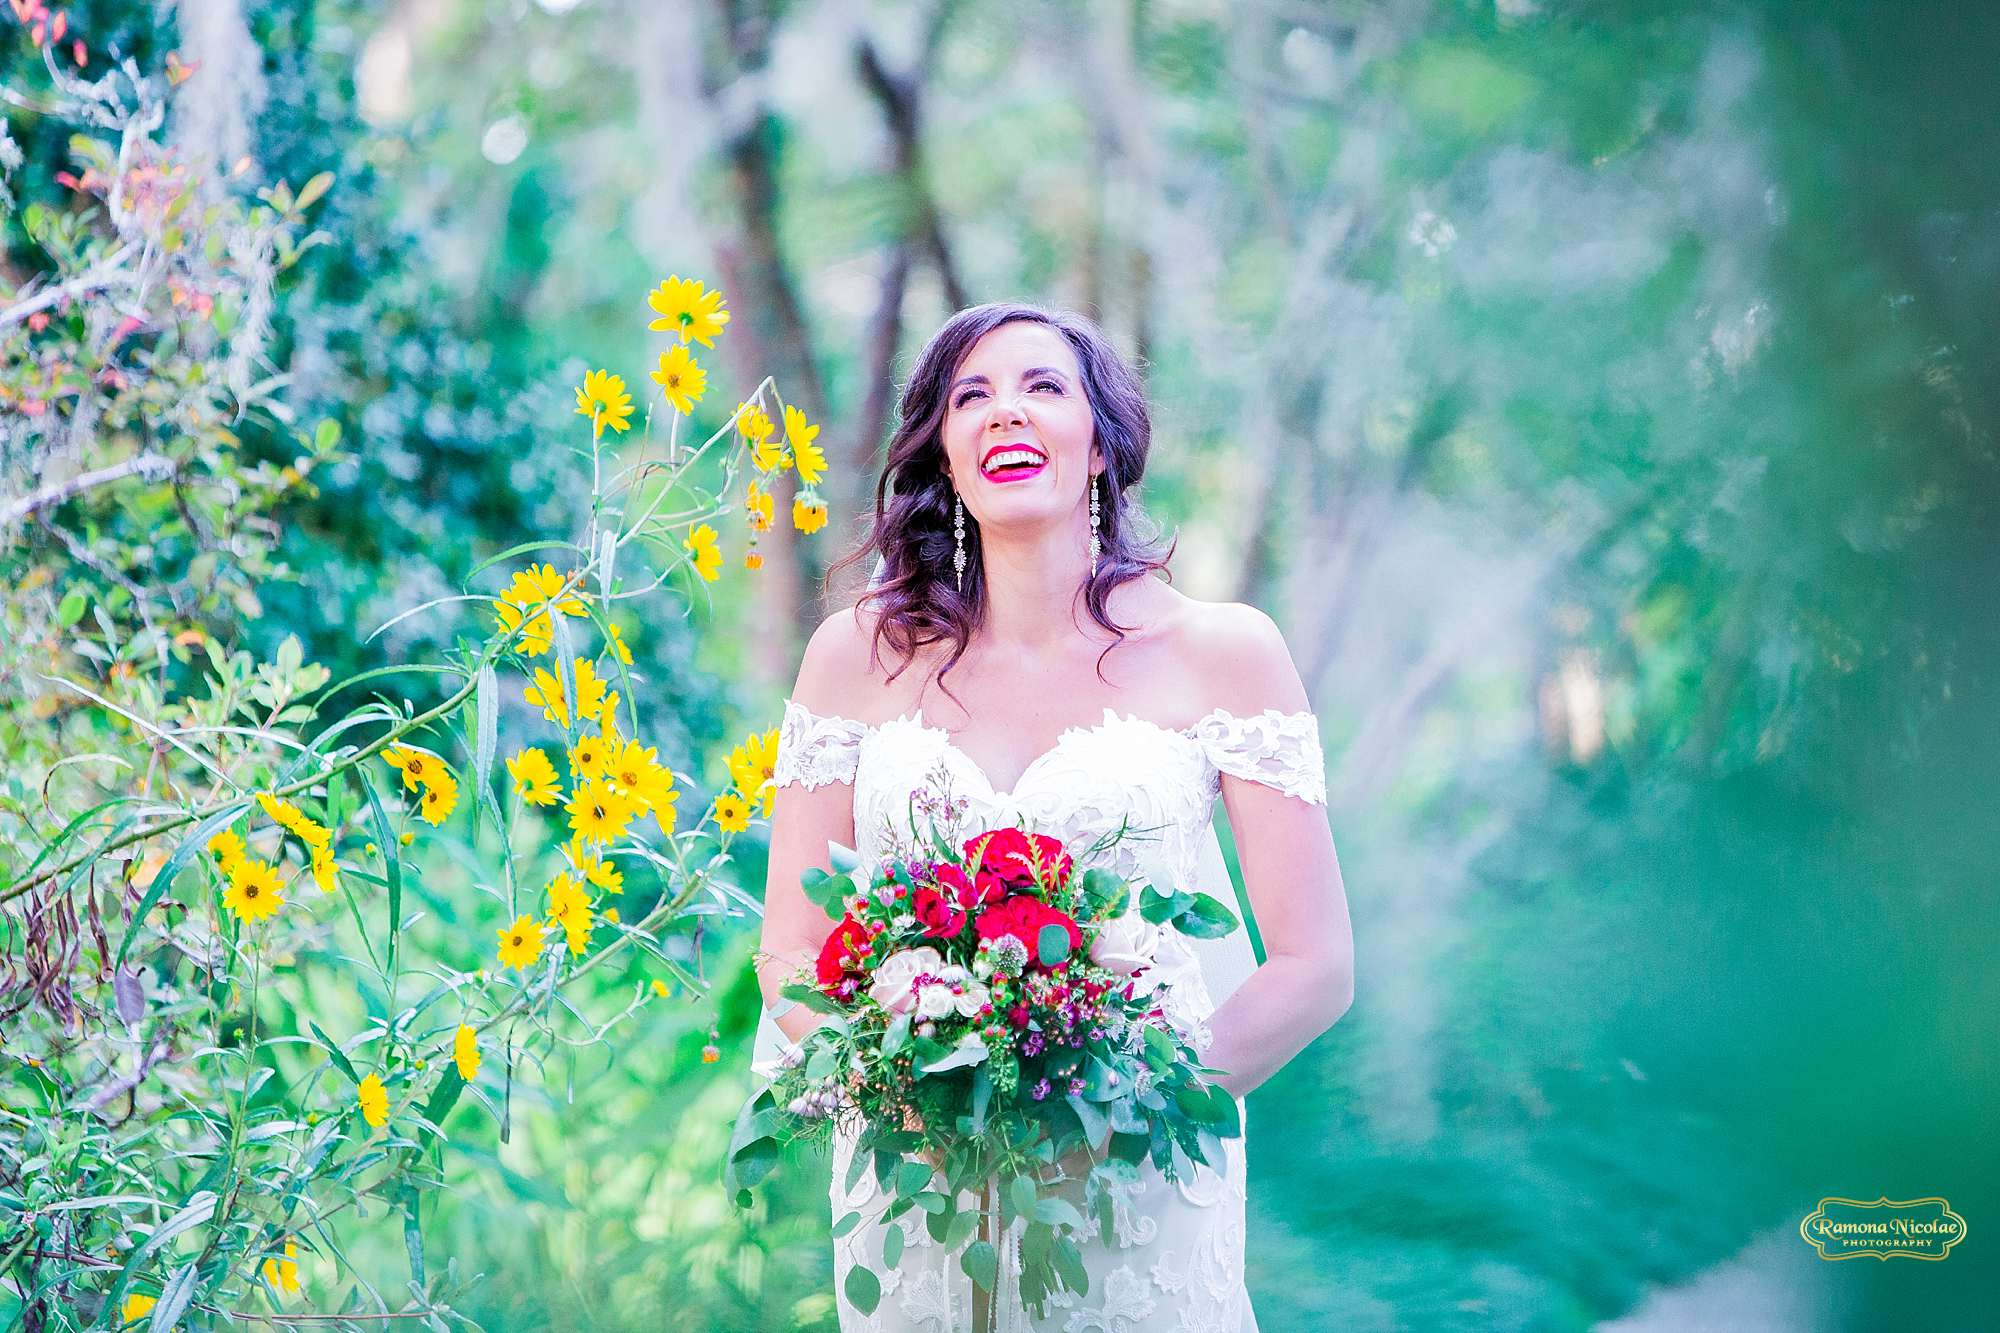 bride smiling surounded by flowers at brookgreen gardens for her bridal session with ramona nicolae photography in myrtle beach sc-3.jpg